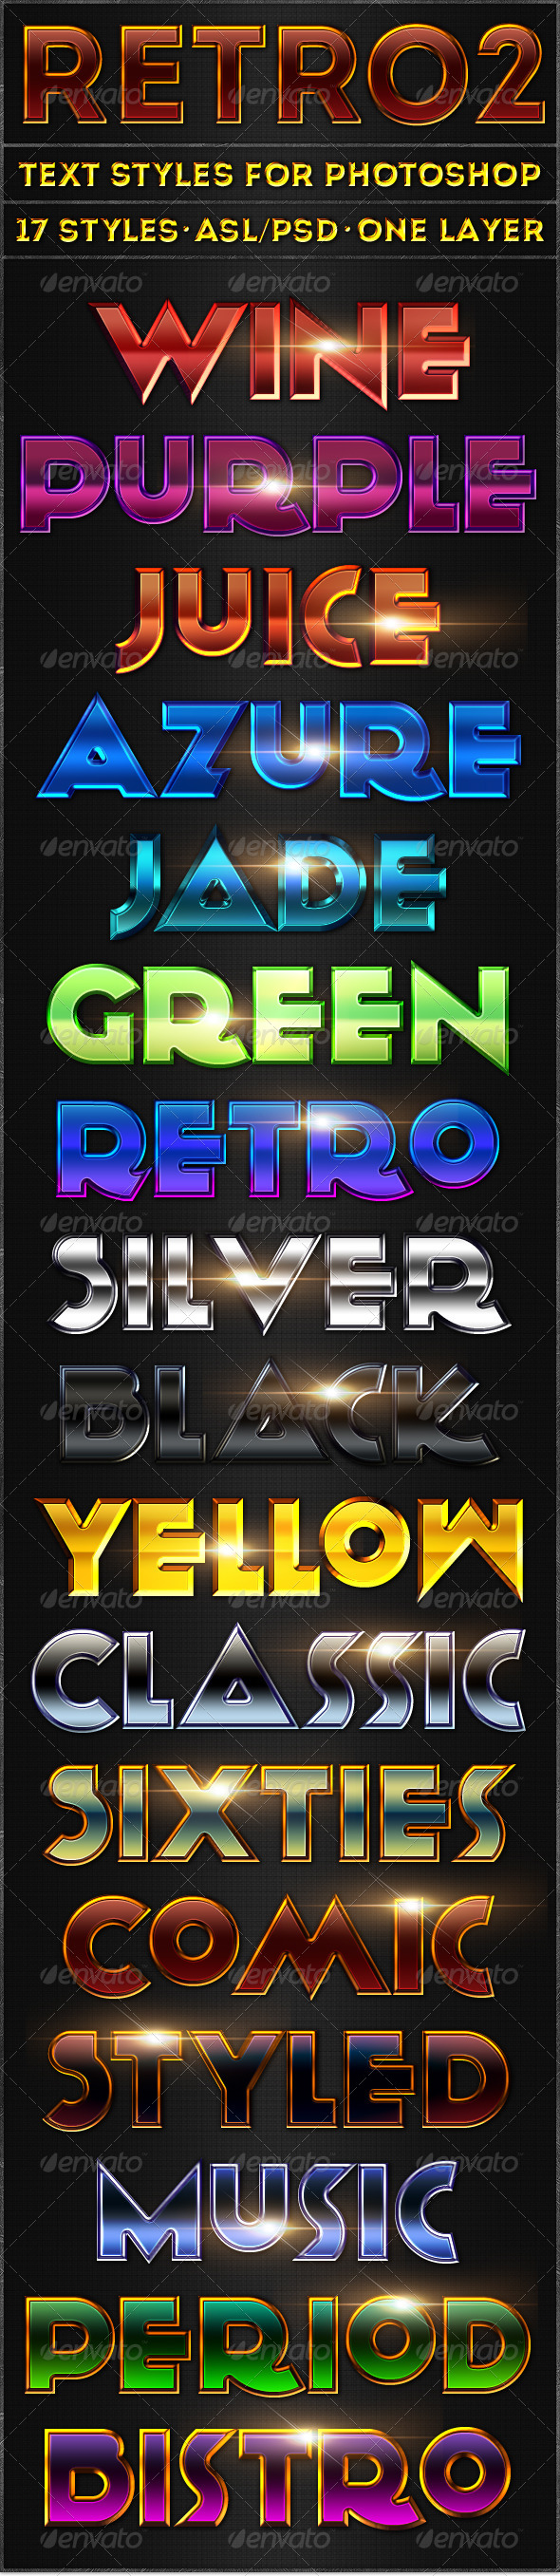 Retro 2 - Text Styles - Add-ons